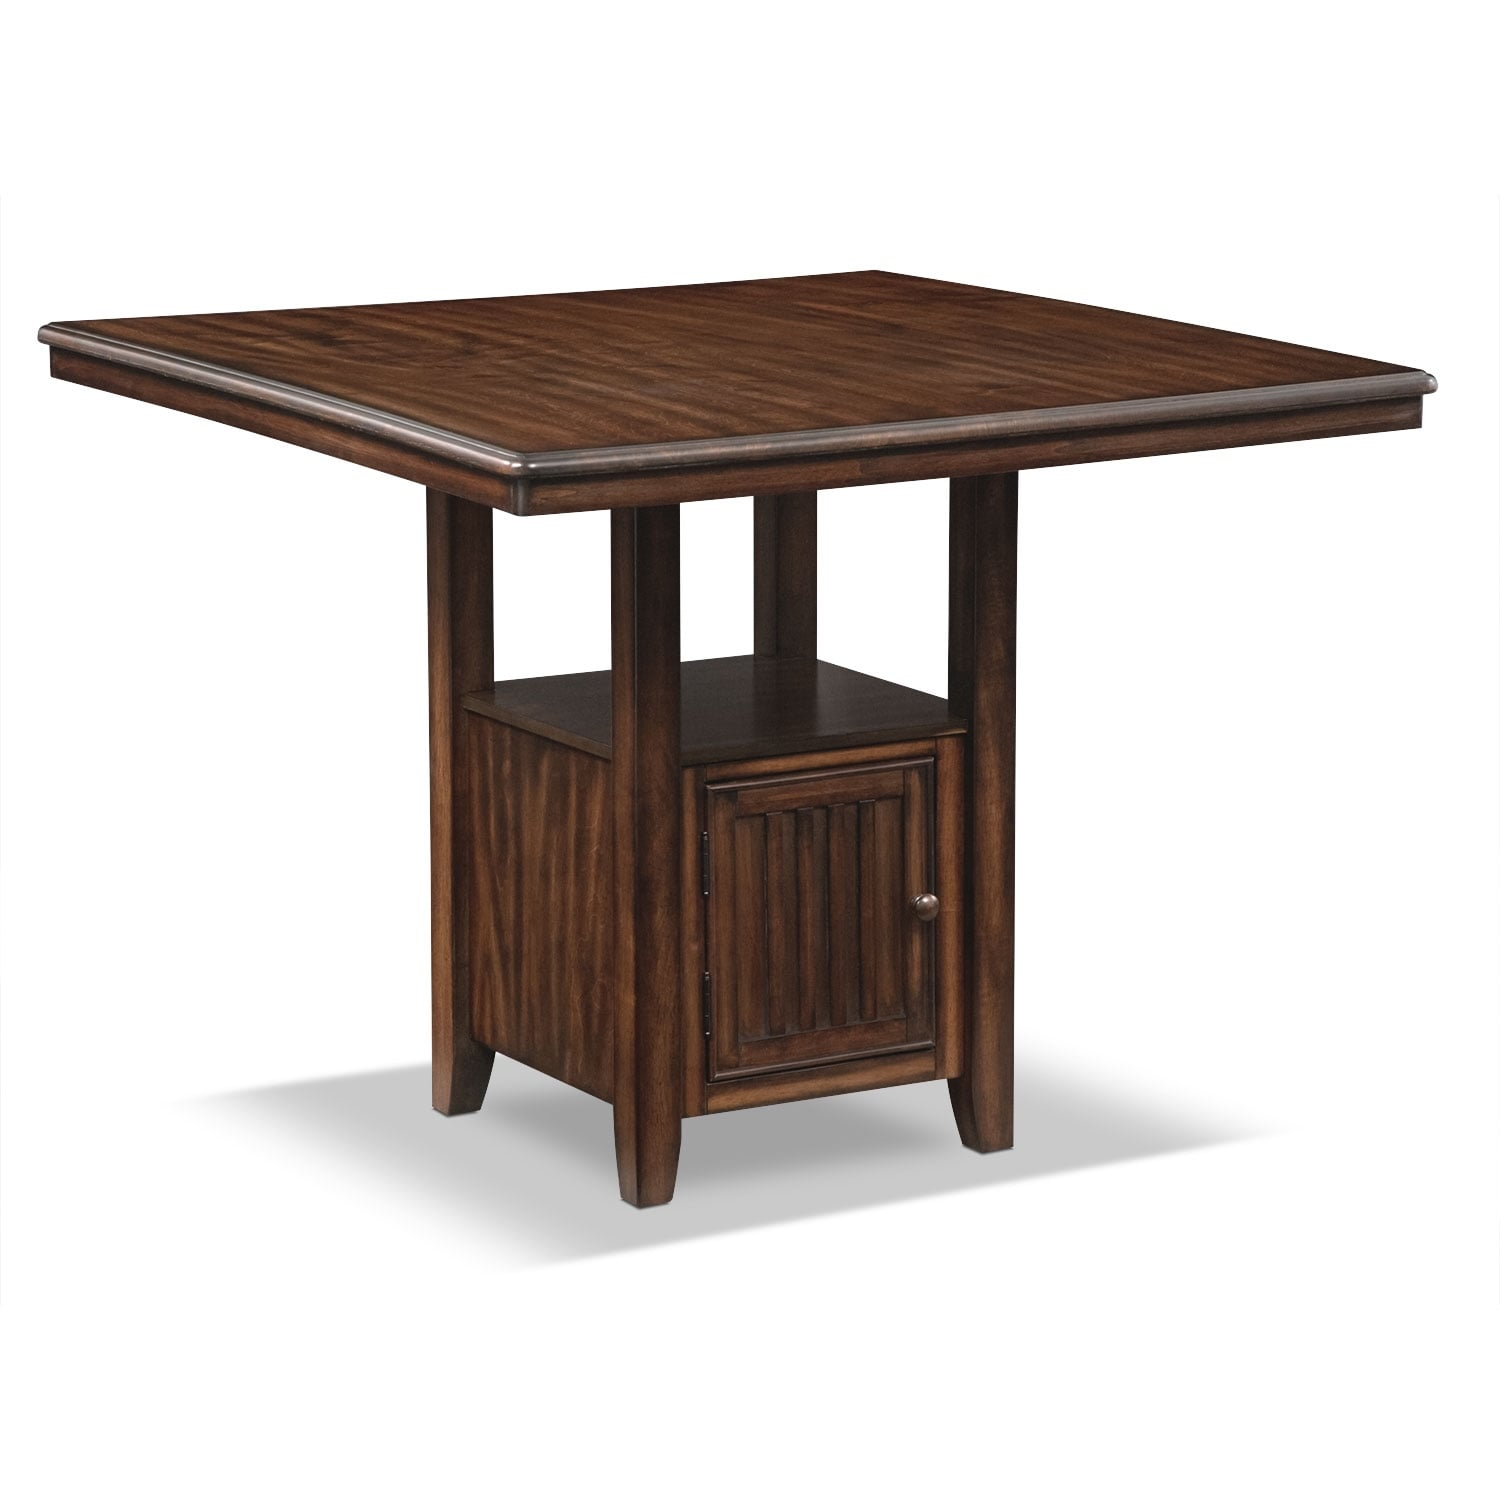 Dining Room Furniture - Natchez Trail Counter-Height Table